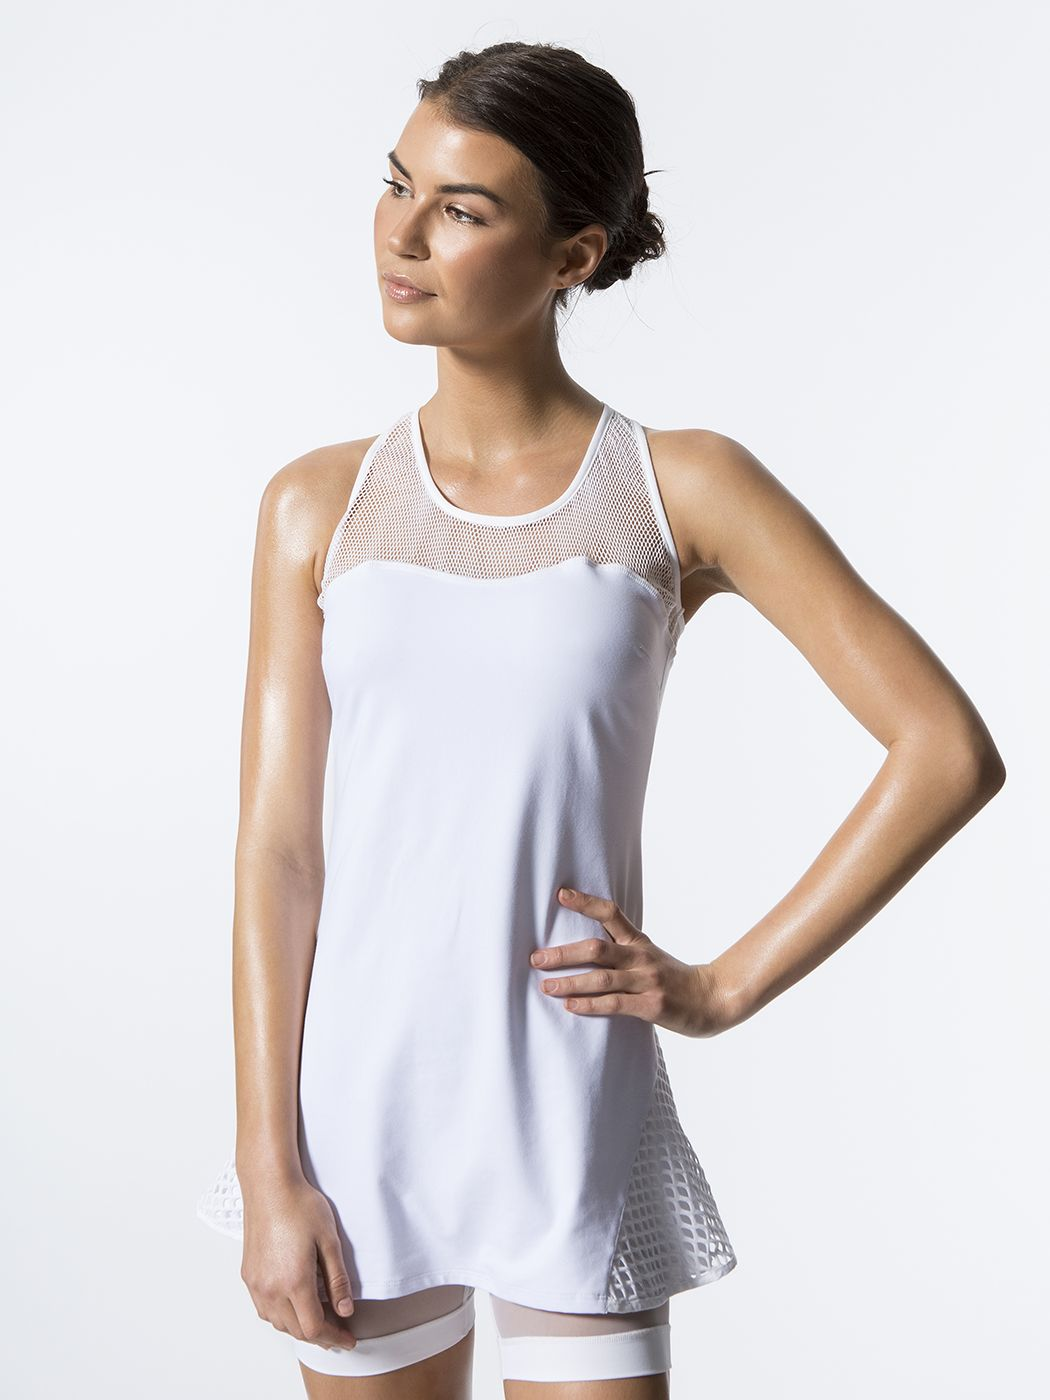 b95e1c94d4 Antigravity Dress Dresse in White by Michi from Carbon38 ...